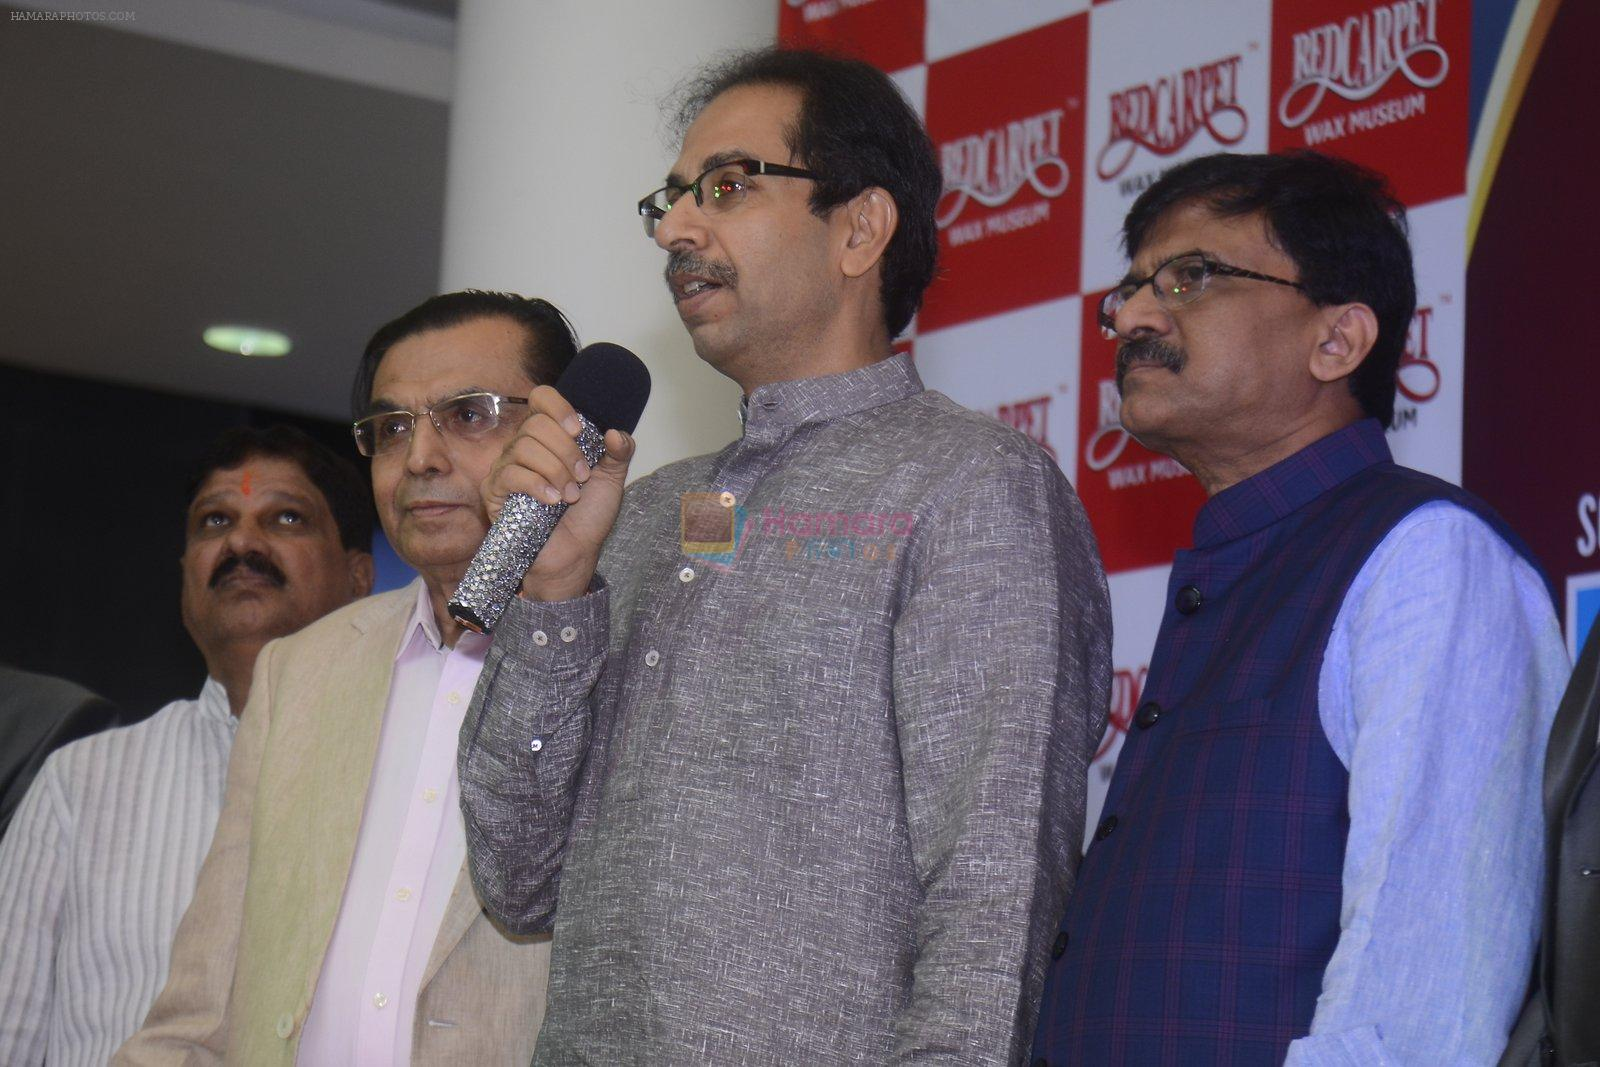 Uddhav Thackerey innagurates Wax Musuem on 3rd Dec 2016